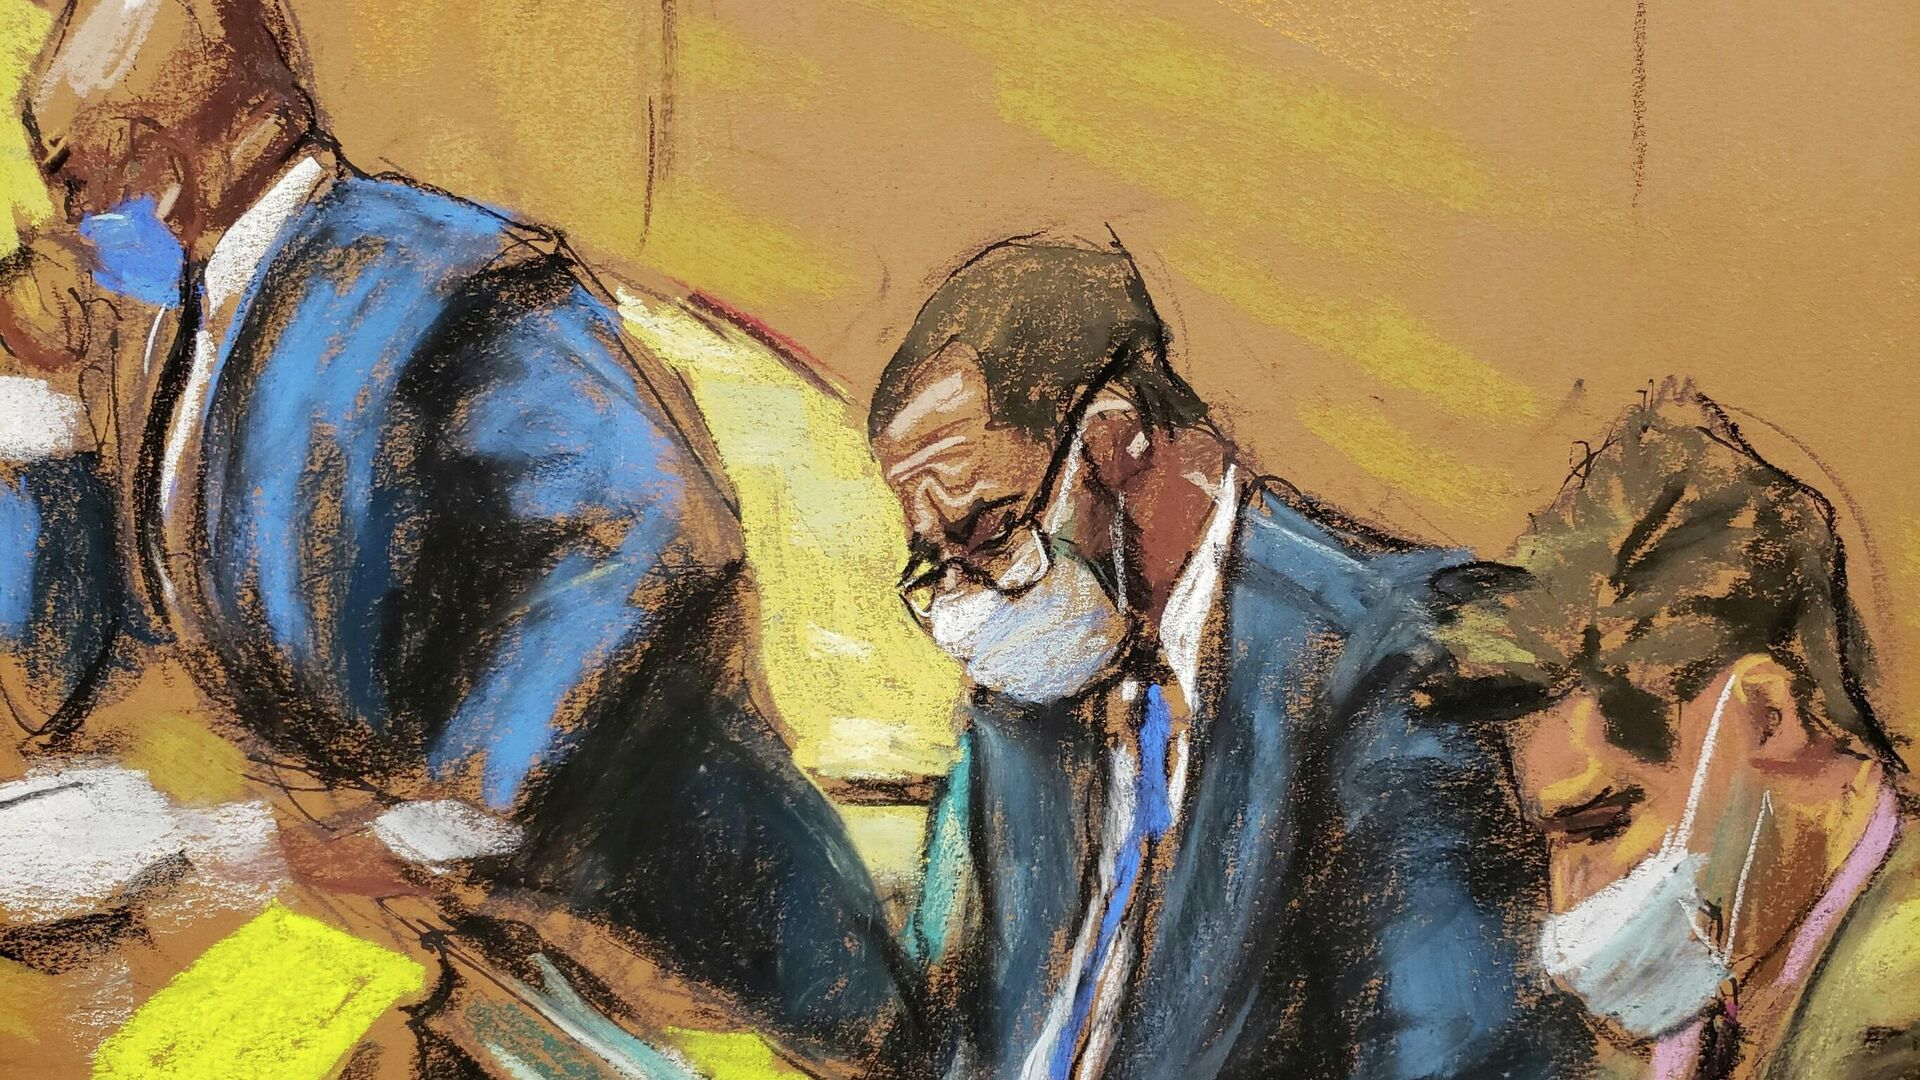 R. Kelly sits with his lawyers Calvin Scholar and Thomas Farinella as the jury deliberate in Kelly's sex abuse trial at Brooklyn's Federal District Court in a courtroom sketch in New York, U.S., September 27, 2021. - Sputnik International, 1920, 27.09.2021